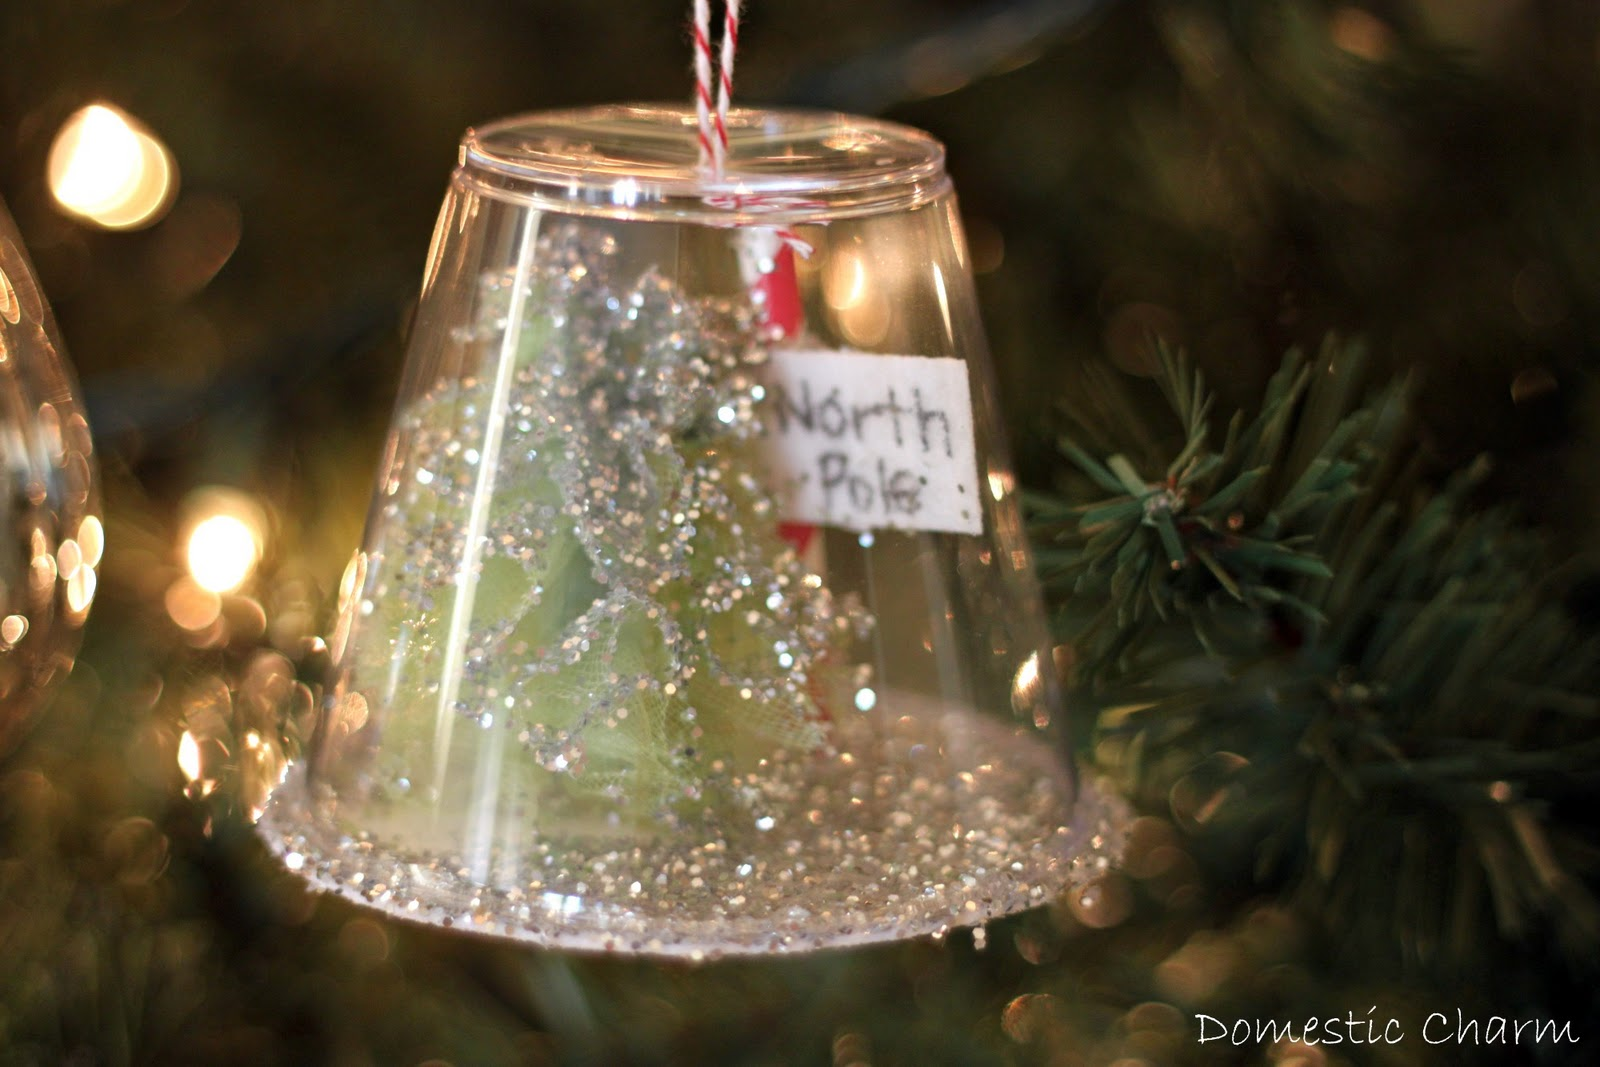 Domestic charm homemade christmas ornament for Homemade tree decorations